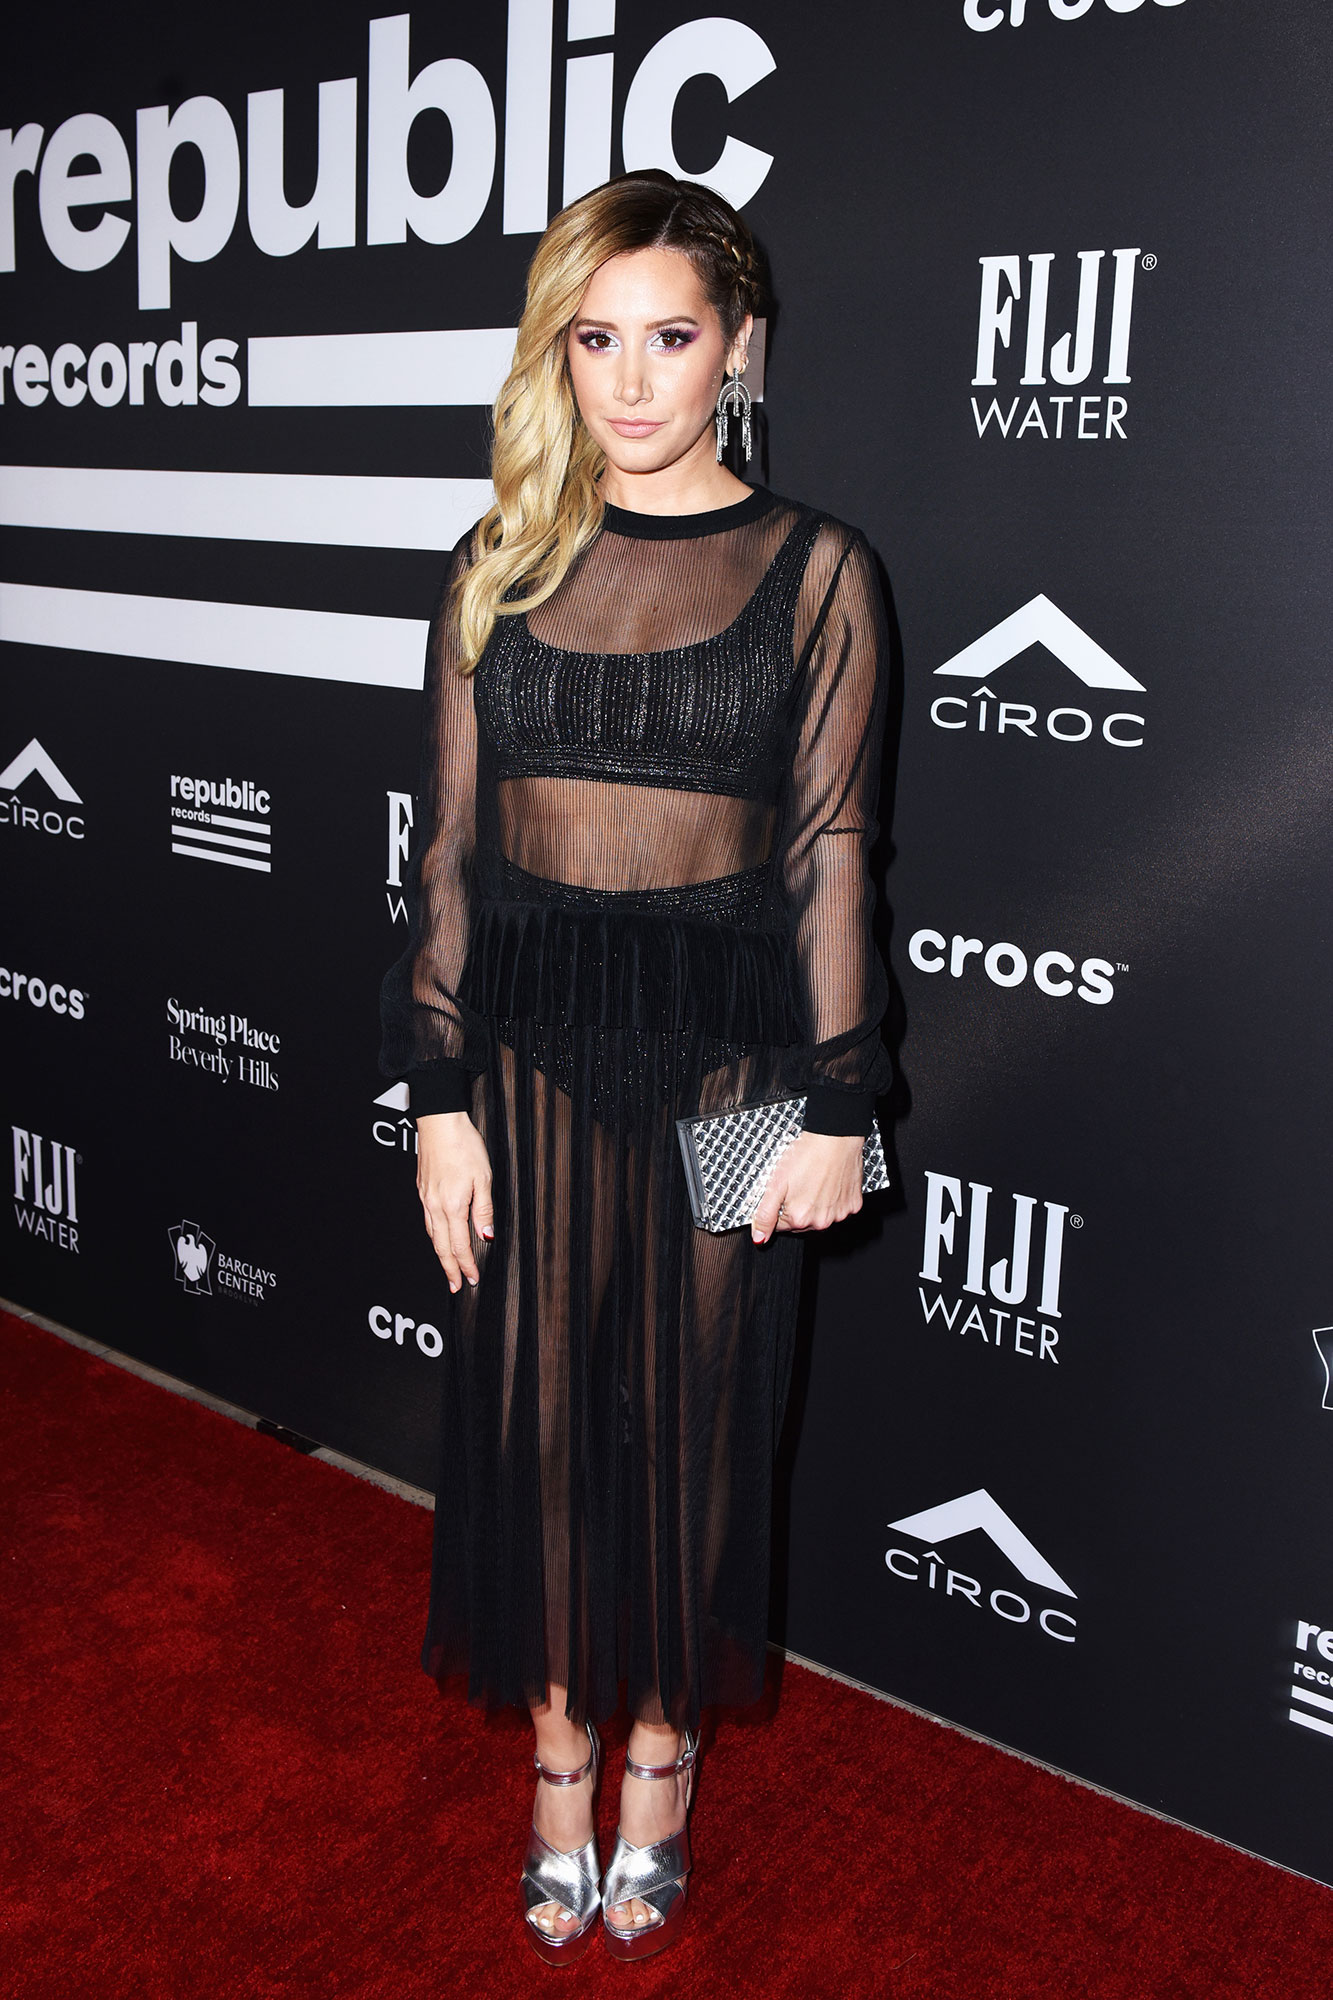 Ashley Tisdale grammys 2019 - The former Disney-channel star hit up the FIJI Water At Republic Records Grammy party in a sheer black ankle-cut dress.